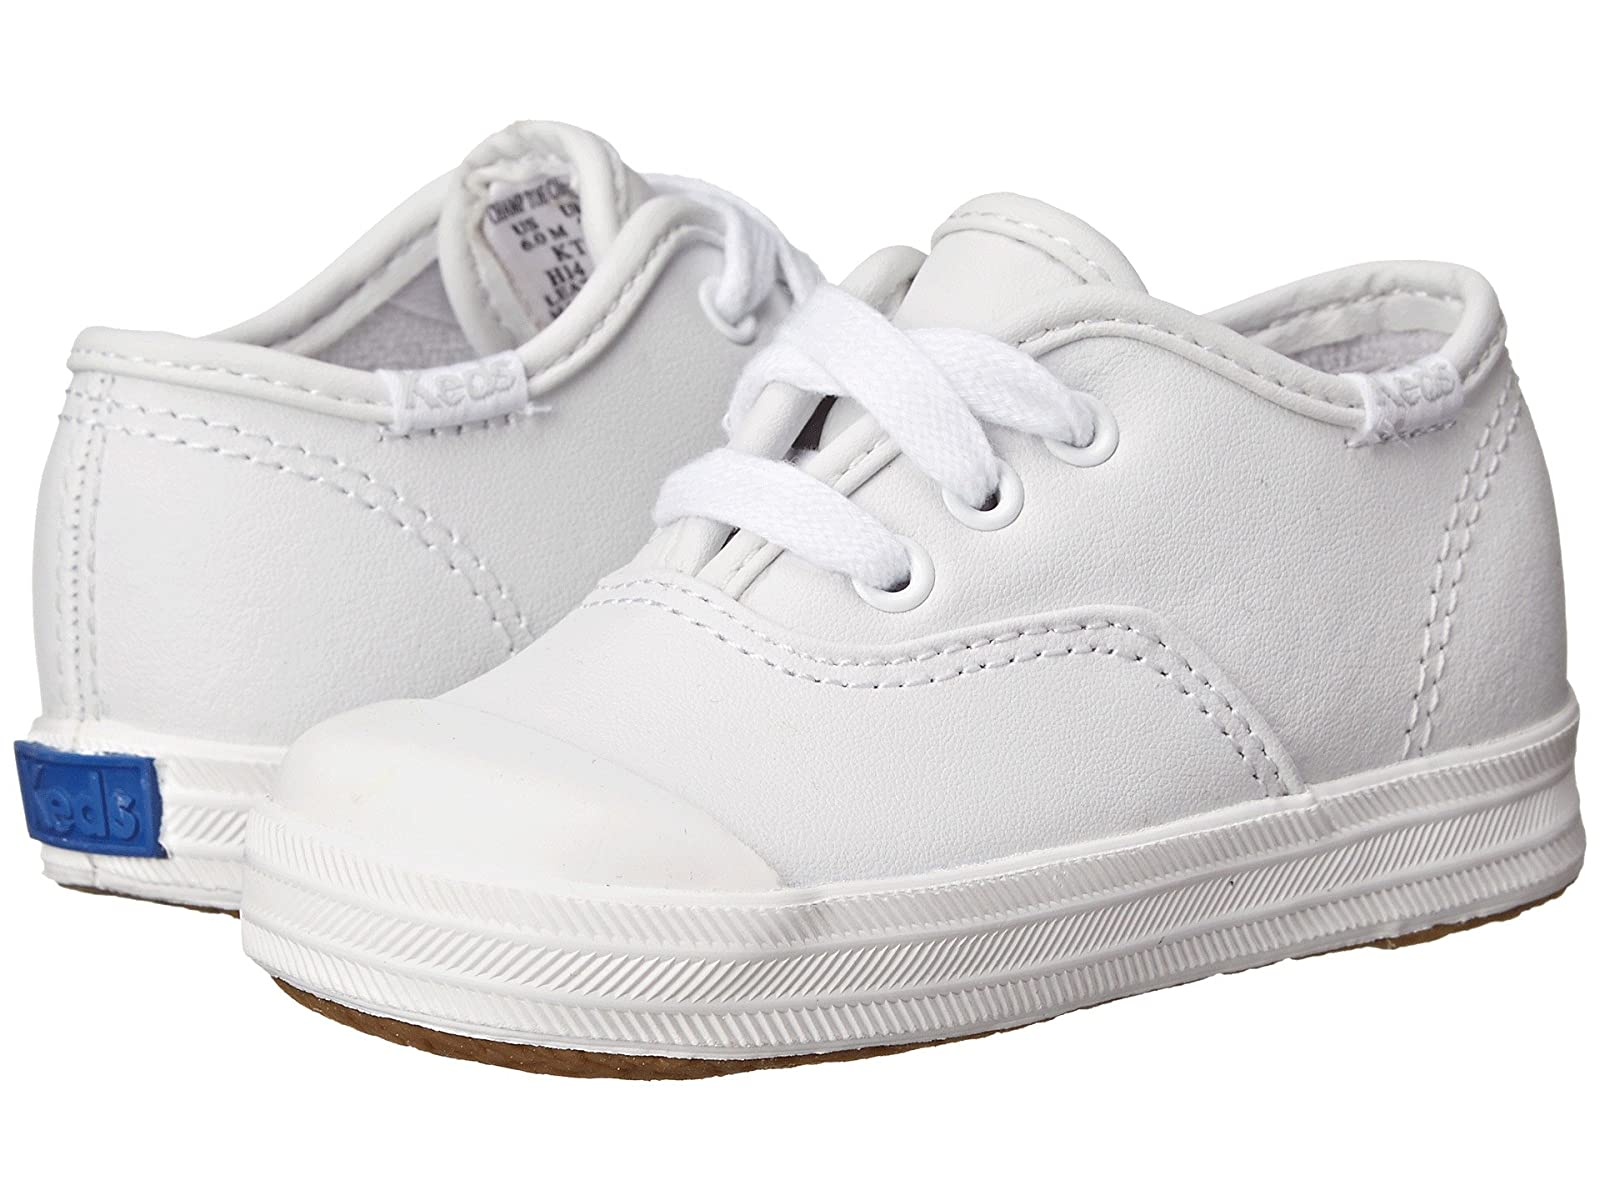 Keds Kids Champion Lace Toe Cap 2 (Toddler)Atmospheric grades have affordable shoes